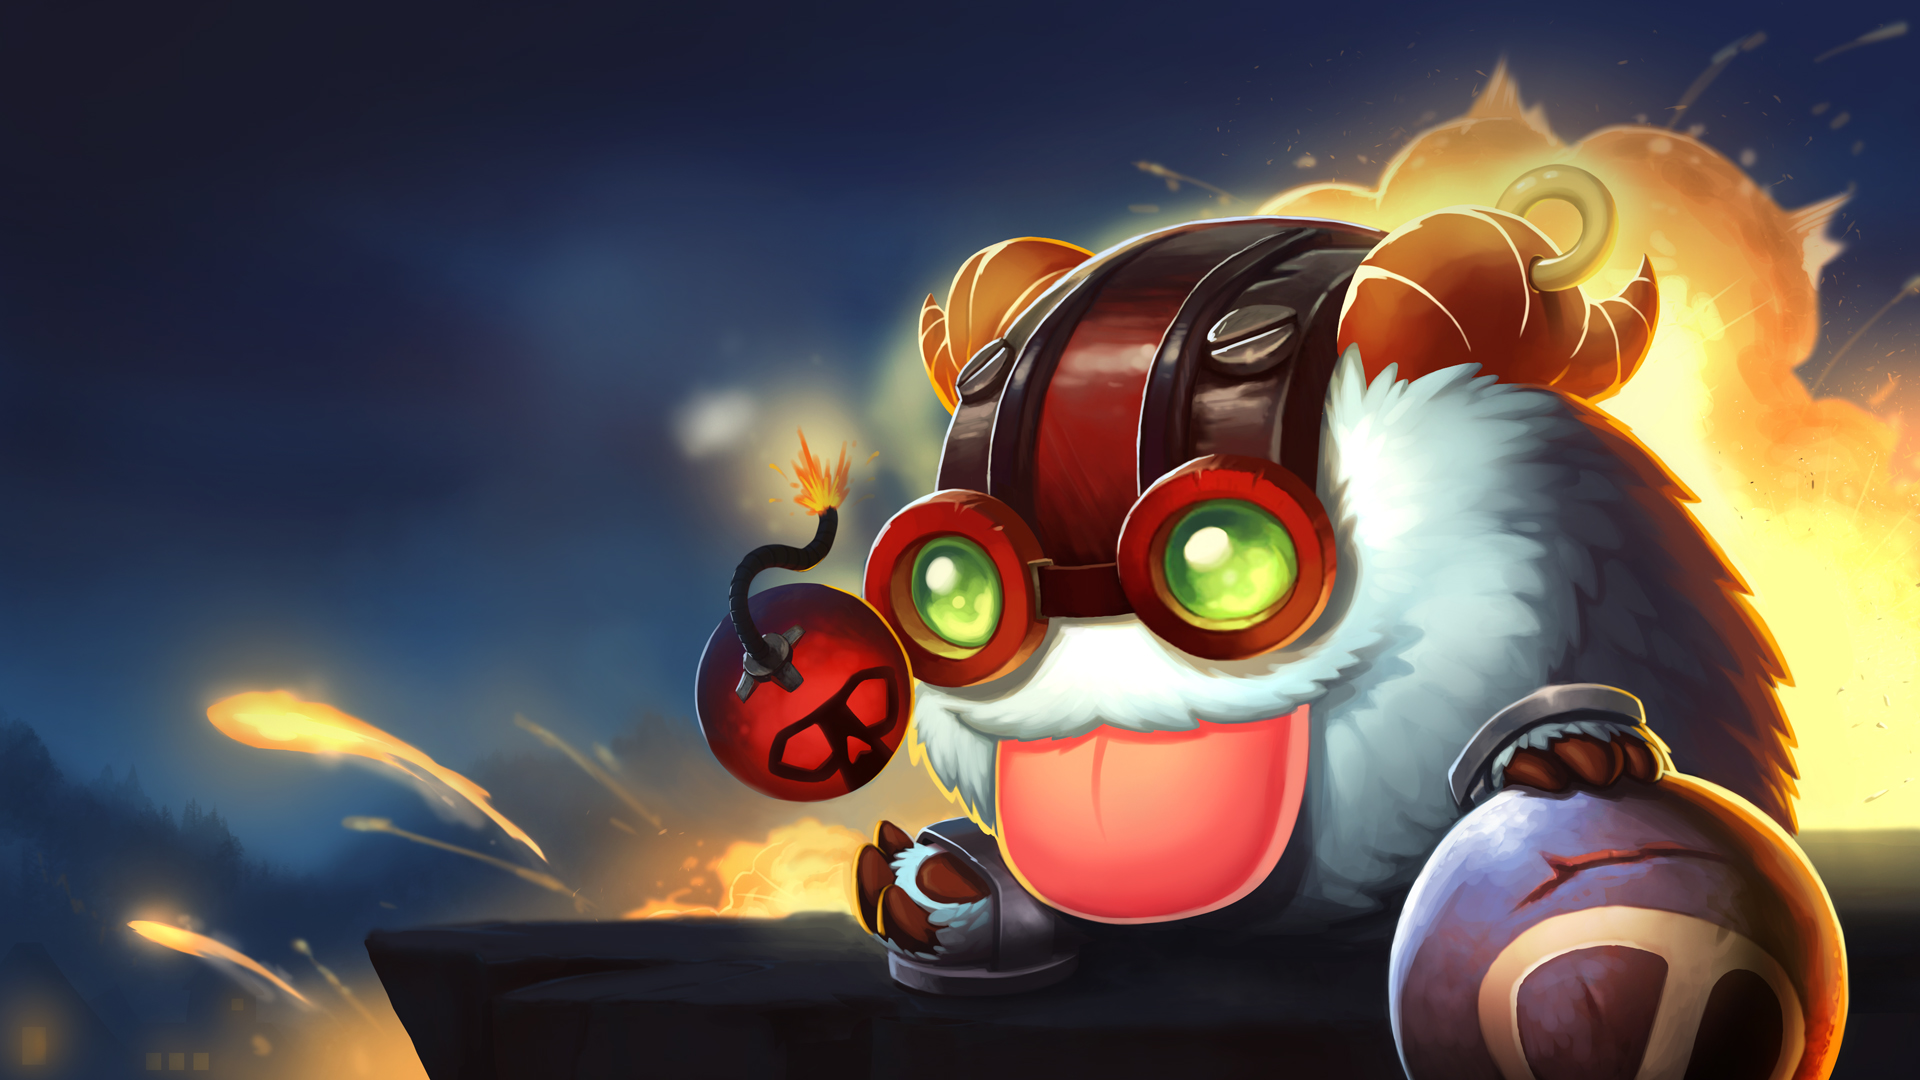 Ziggs Poro wallpaper